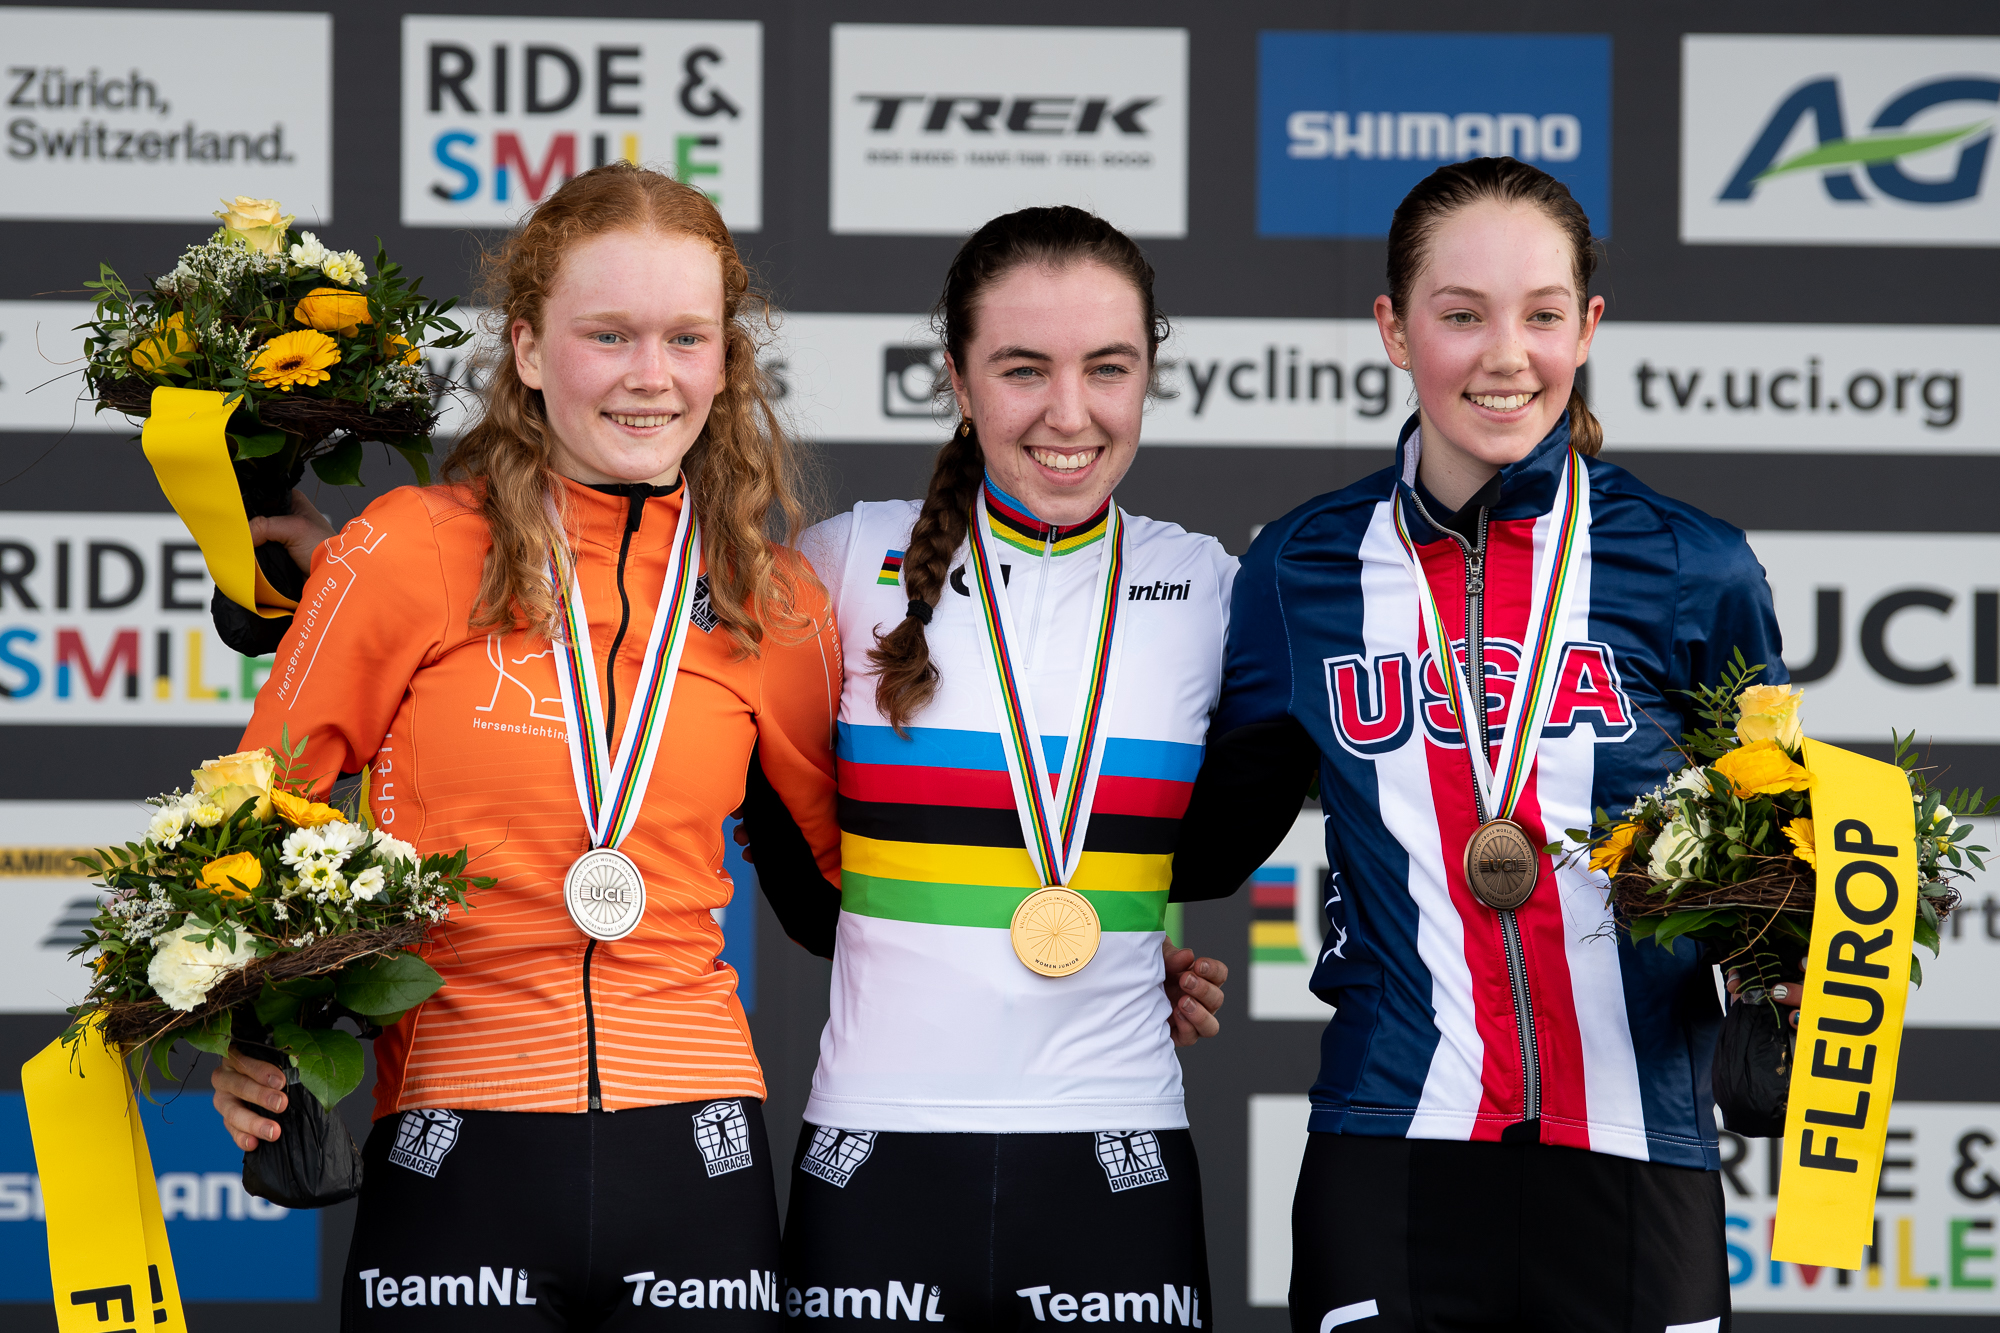 Puck Pieterse, Shirin Van Anrooij and Madigan Munro on the podium at the UCI Cyclocross World Championships